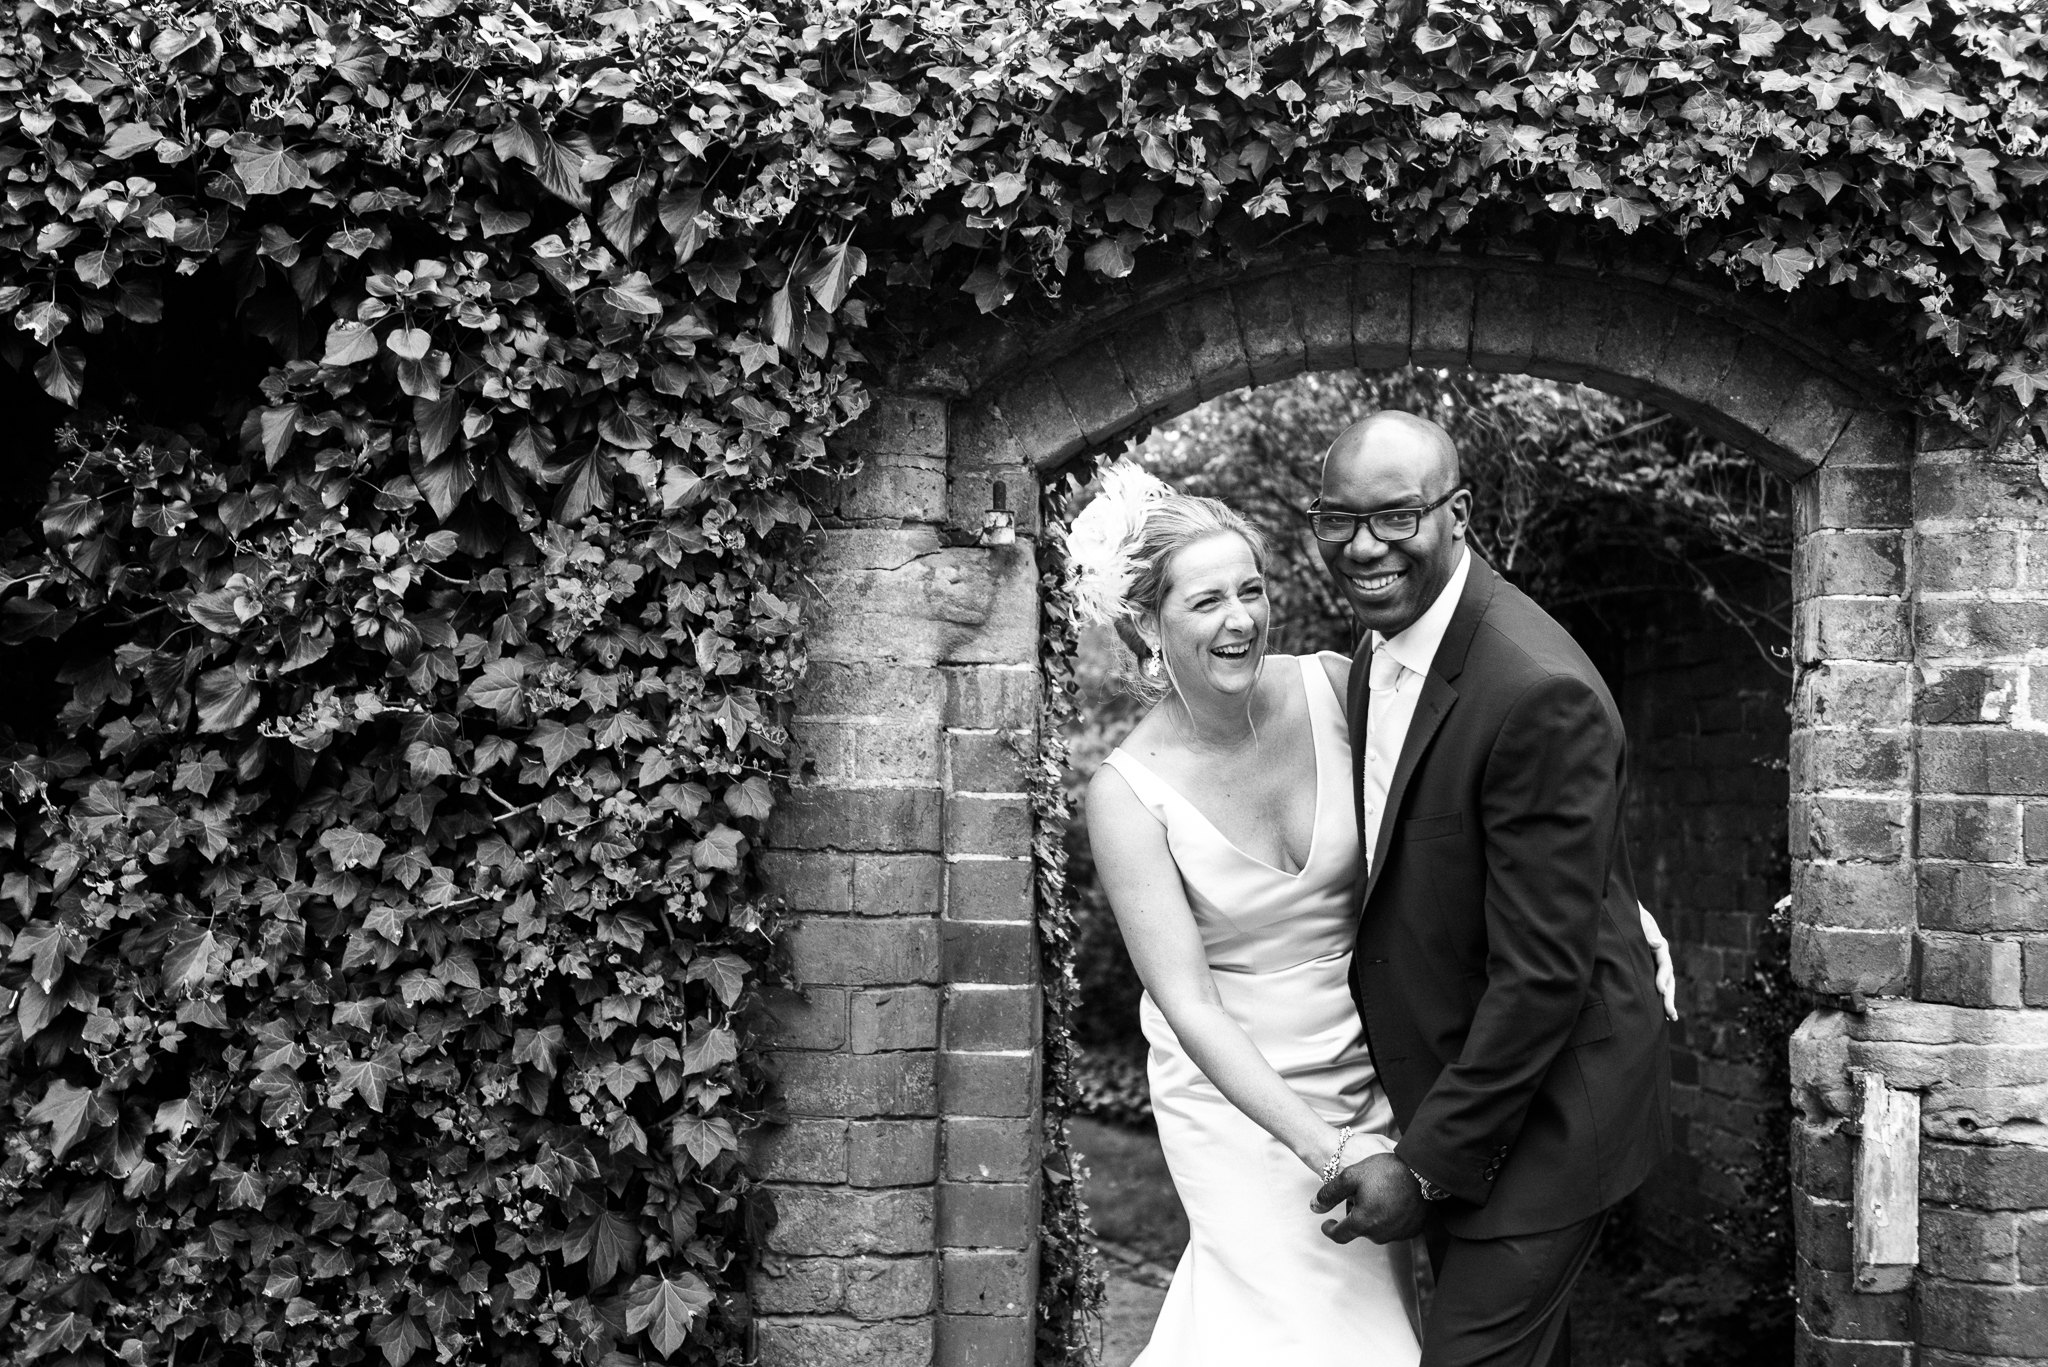 Stylish Easter Wedding at Pendrell Hall Country House Wedding Venue Staffordshire - Jenny Harper-46.jpg